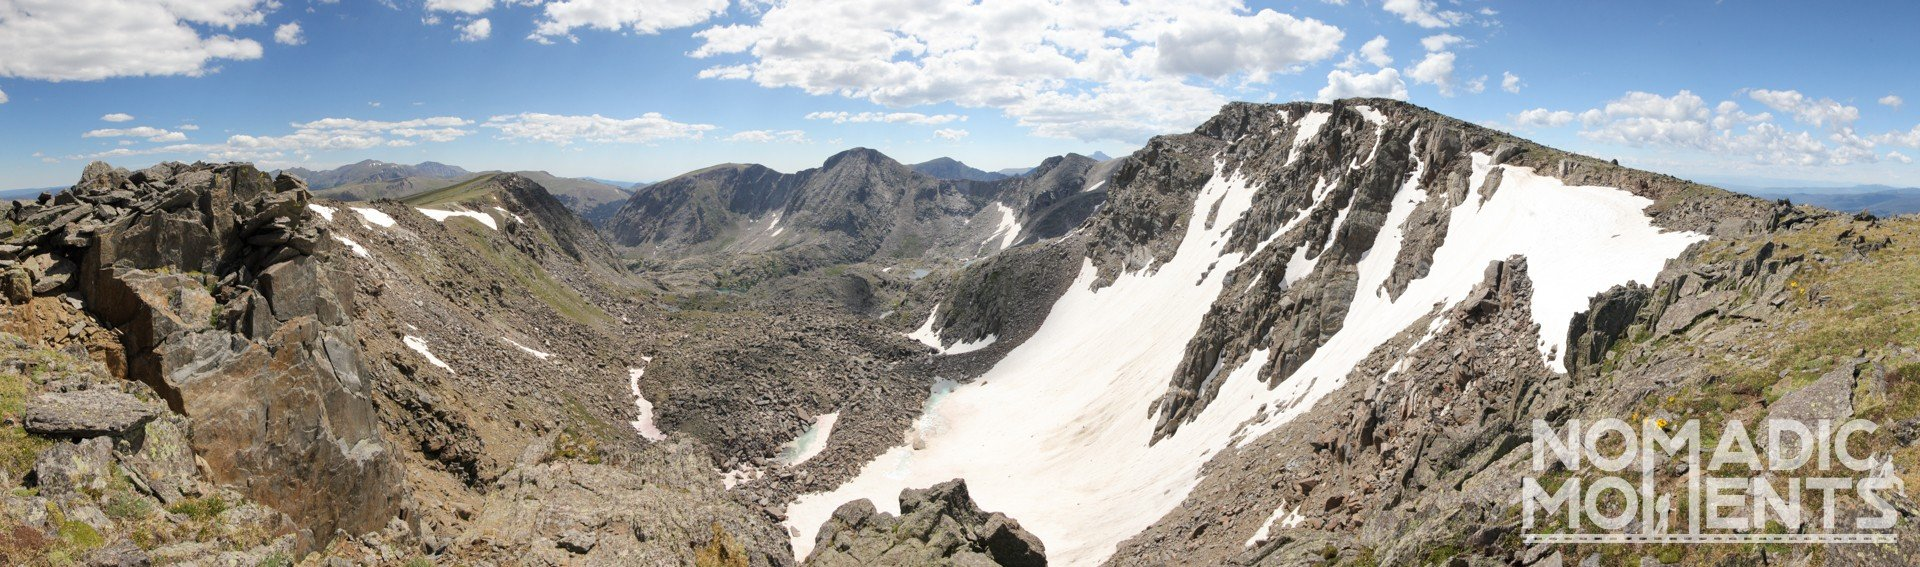 A panorama of the Rocky Mountain National Park landscape.